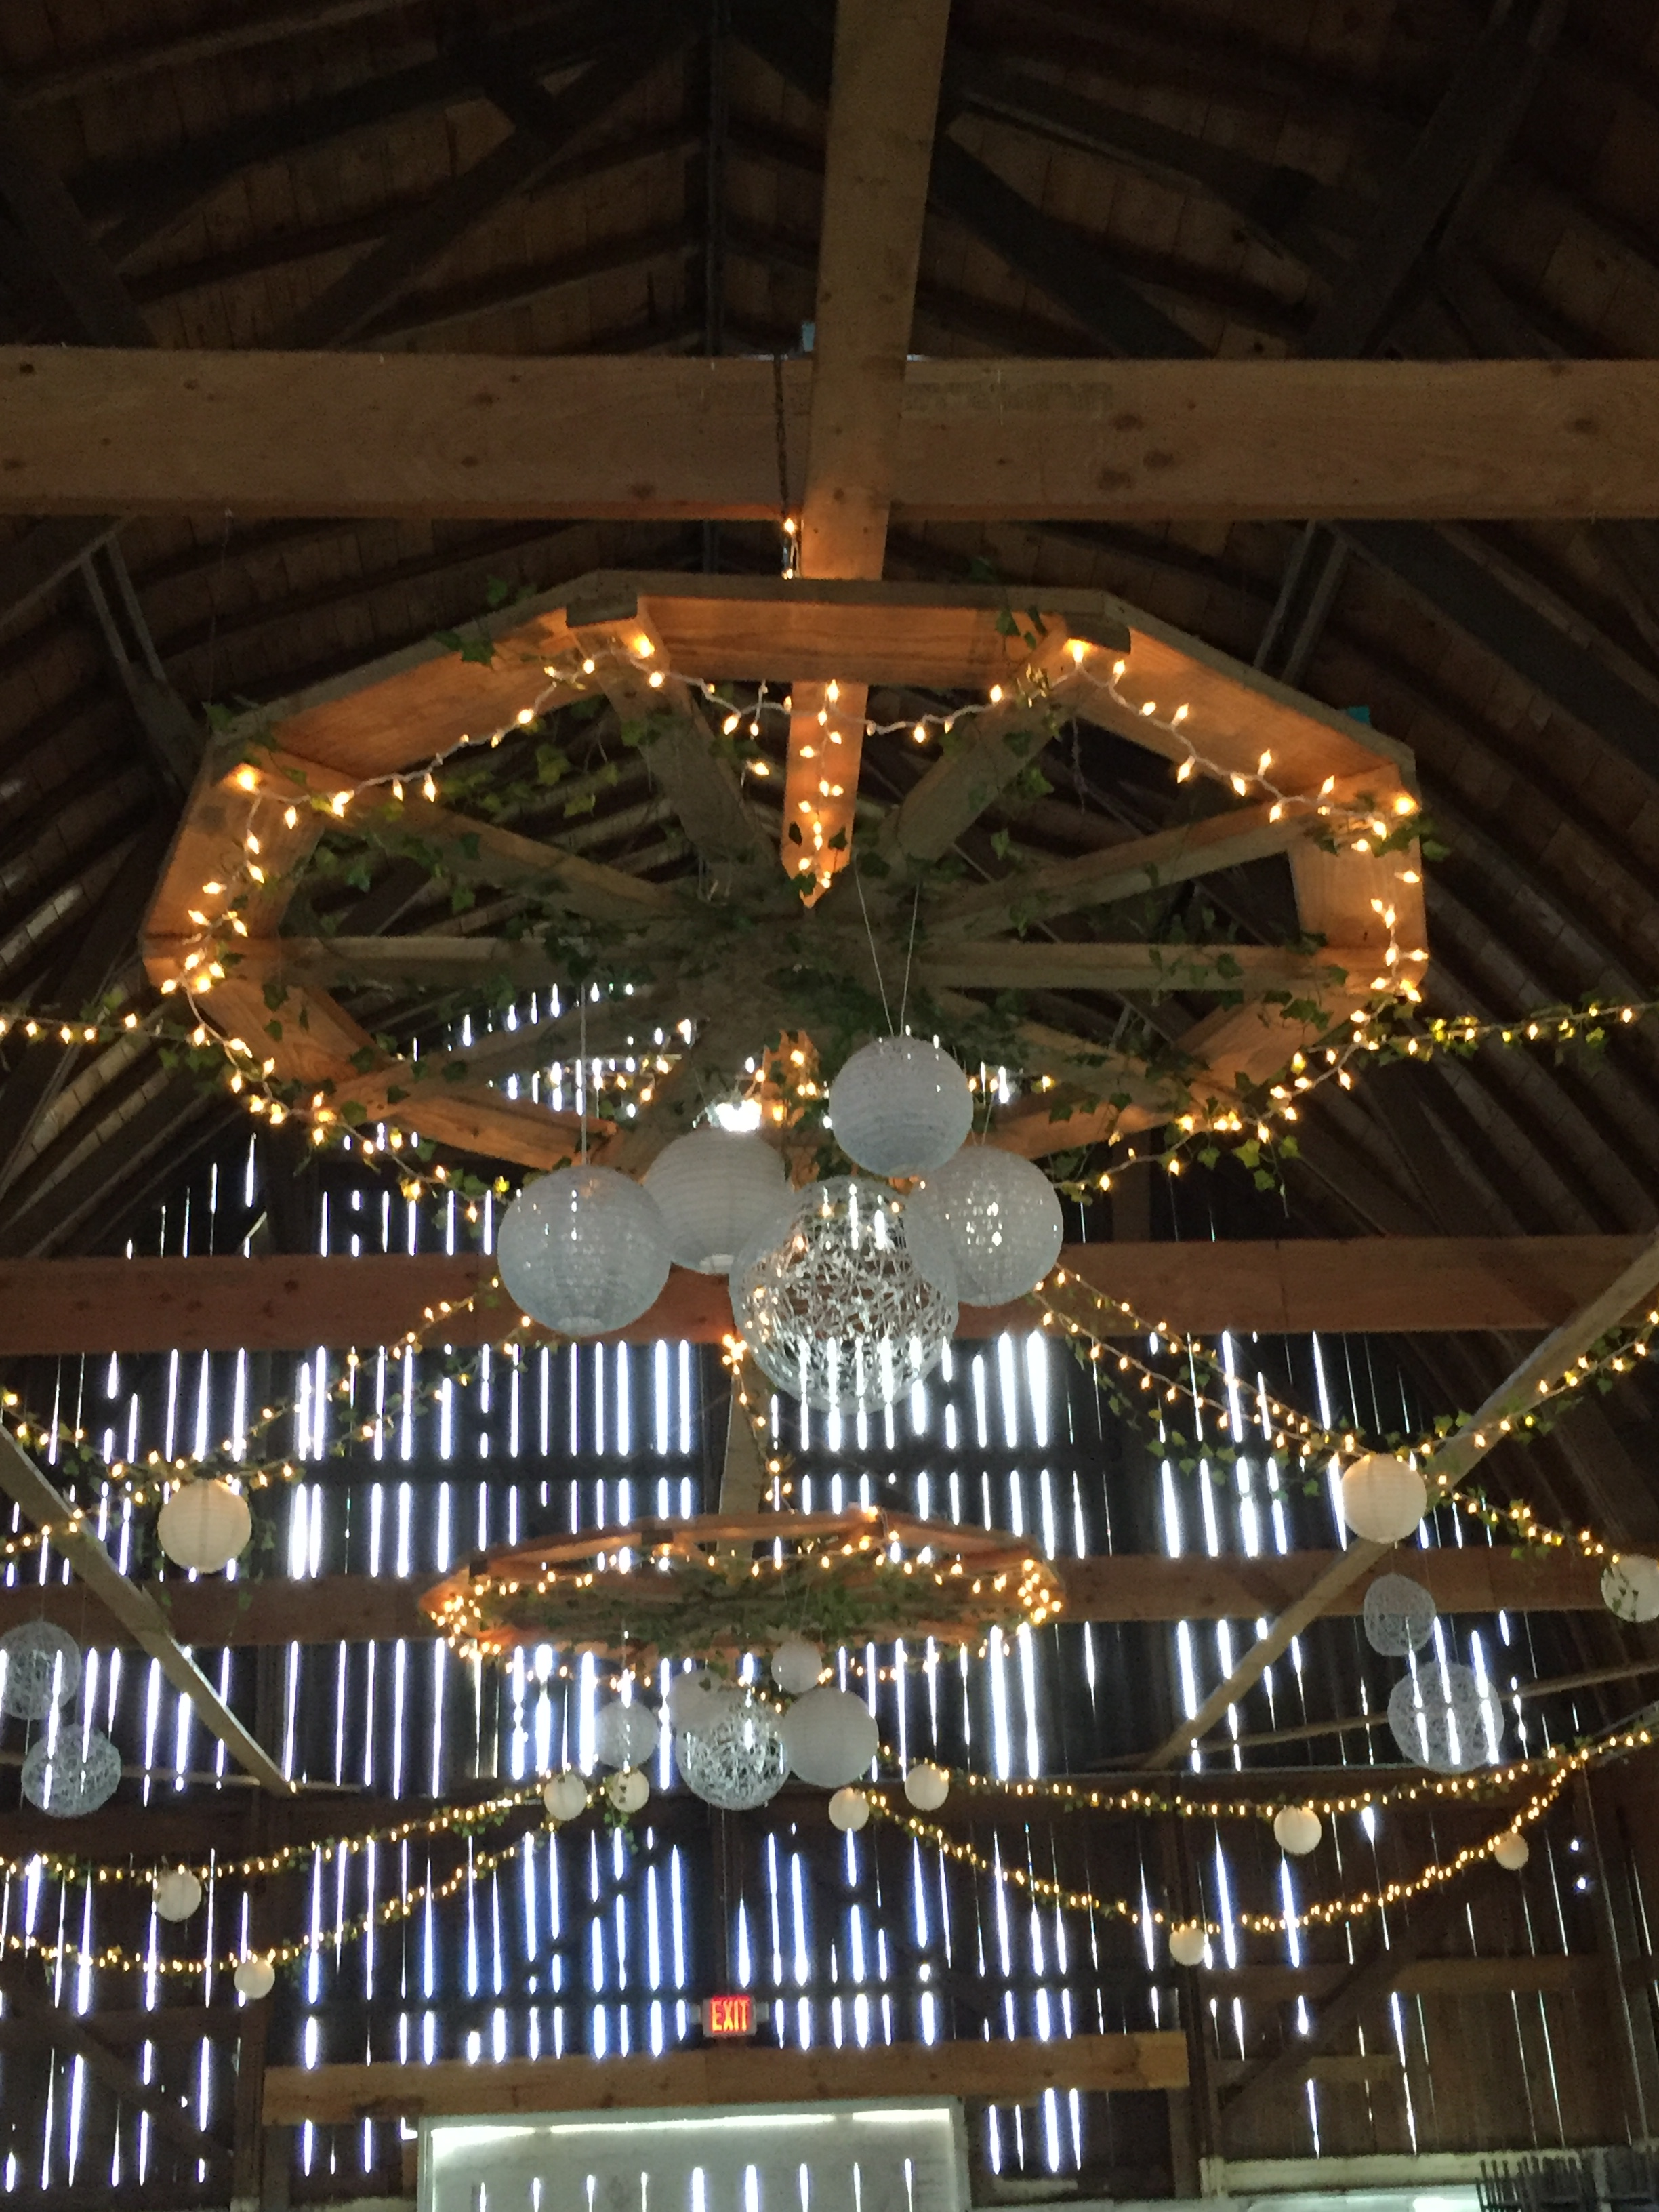 Large barn ceiling view